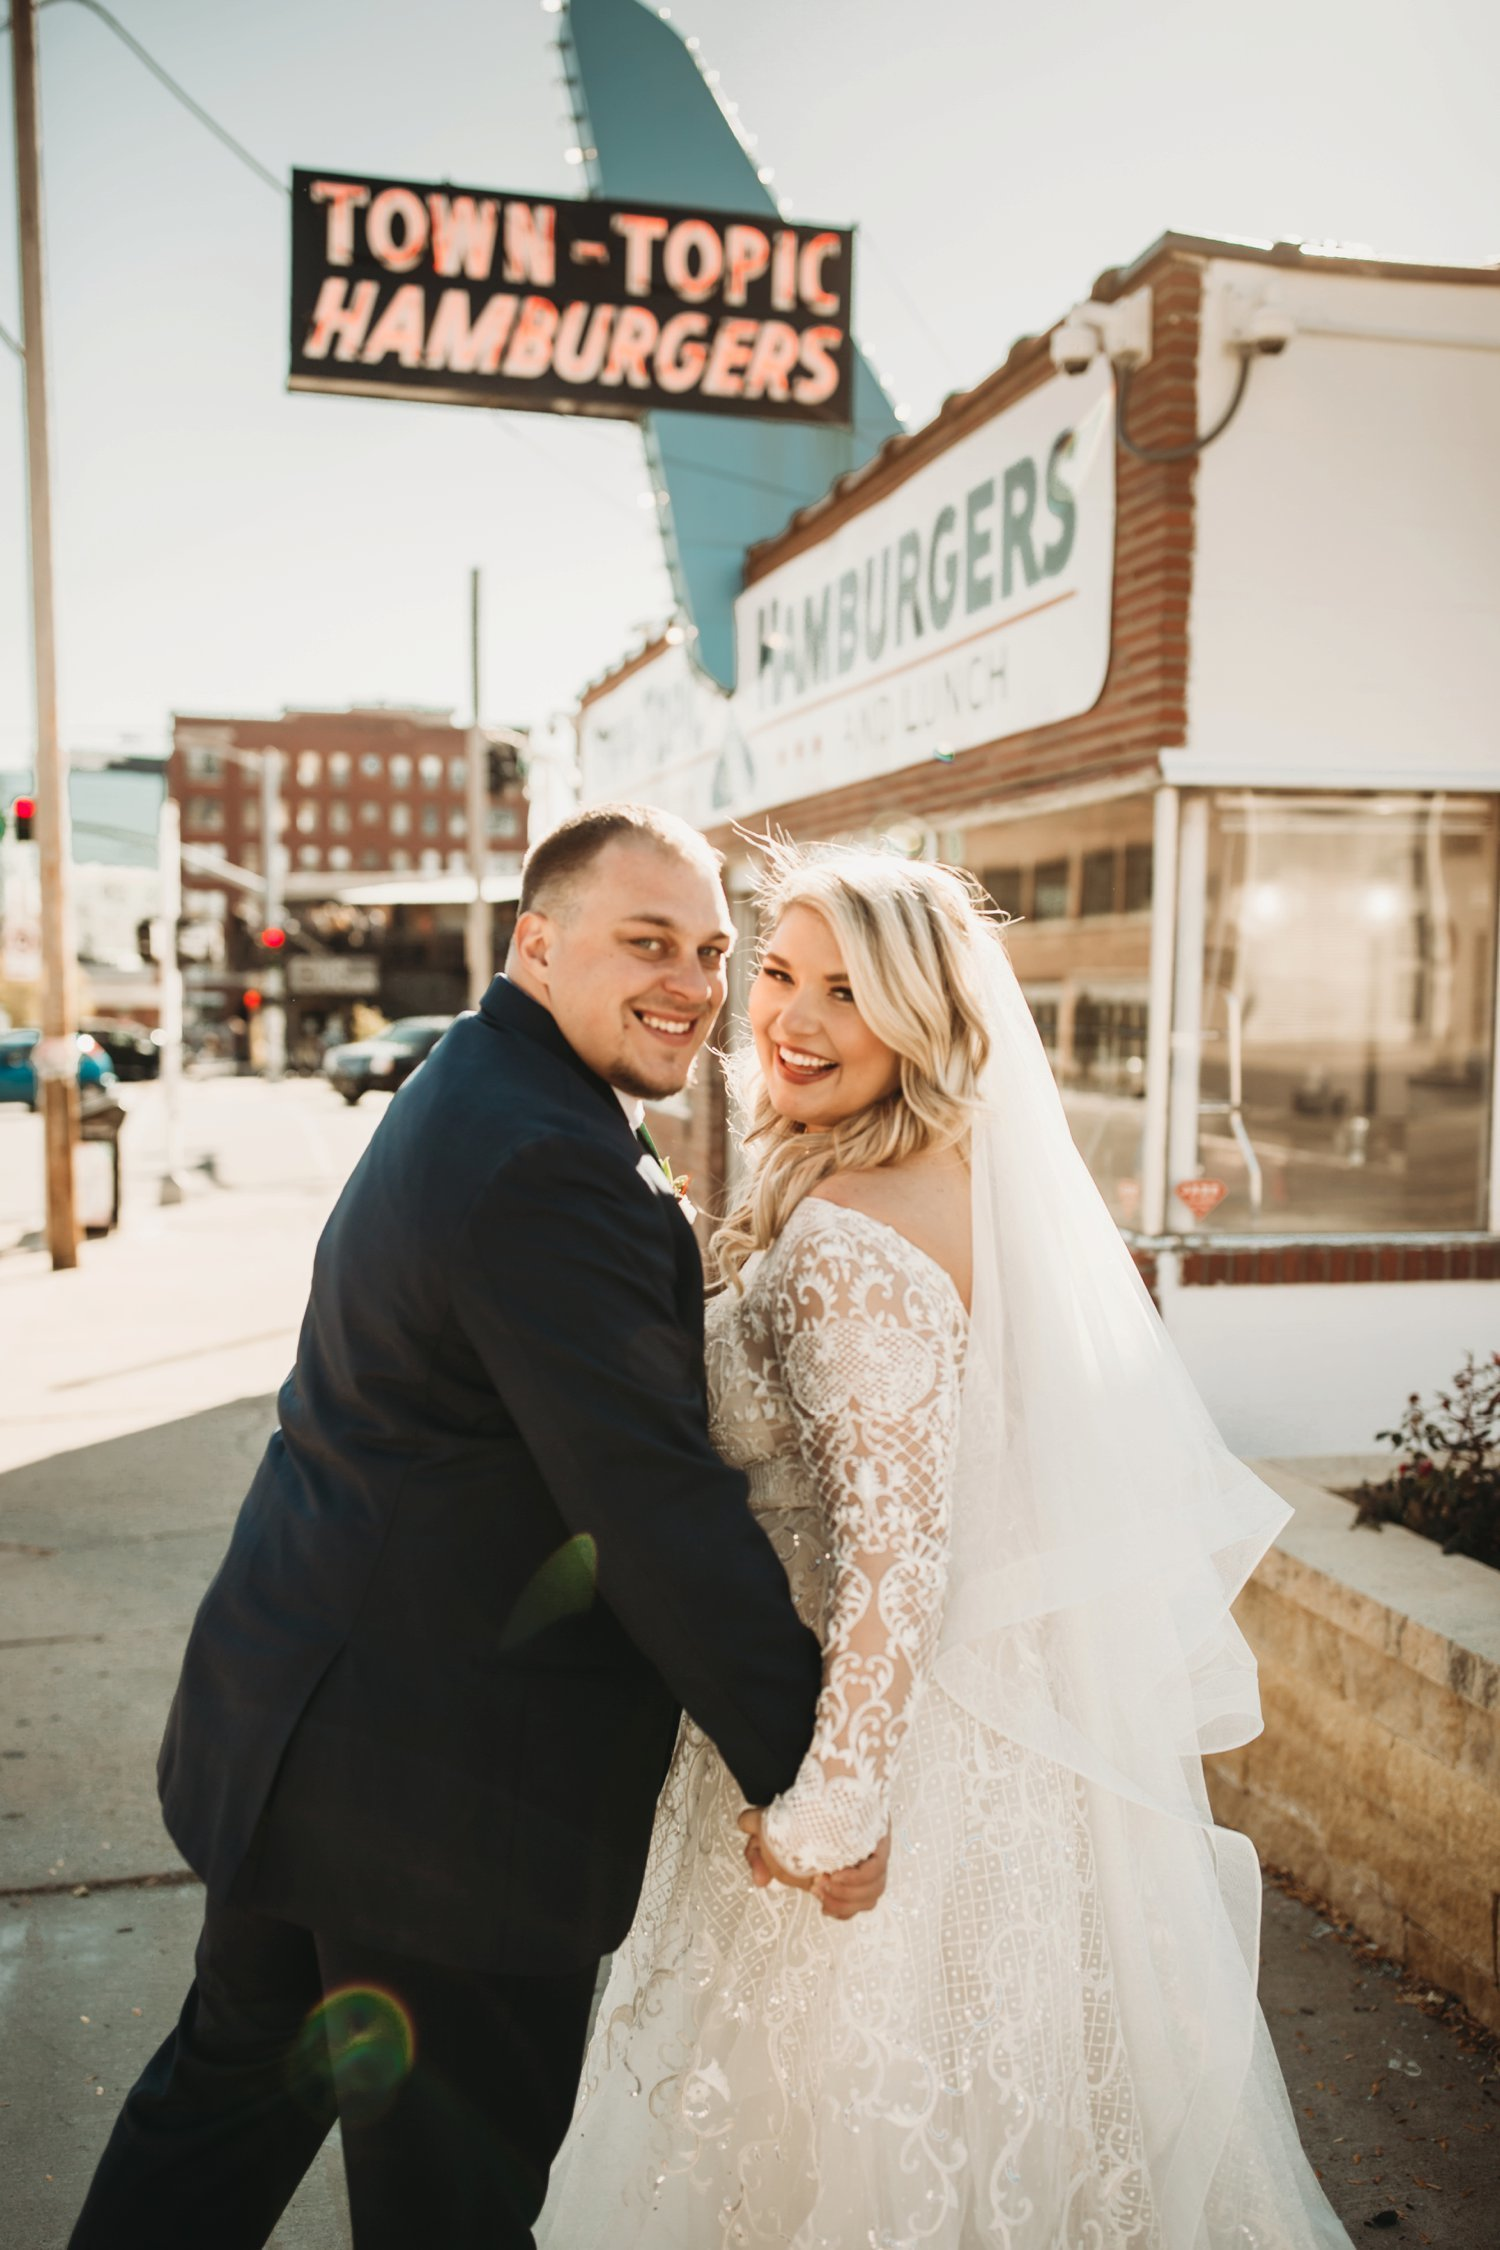 Kansas City Salt Lake City Destination Wedding Photographer_0059